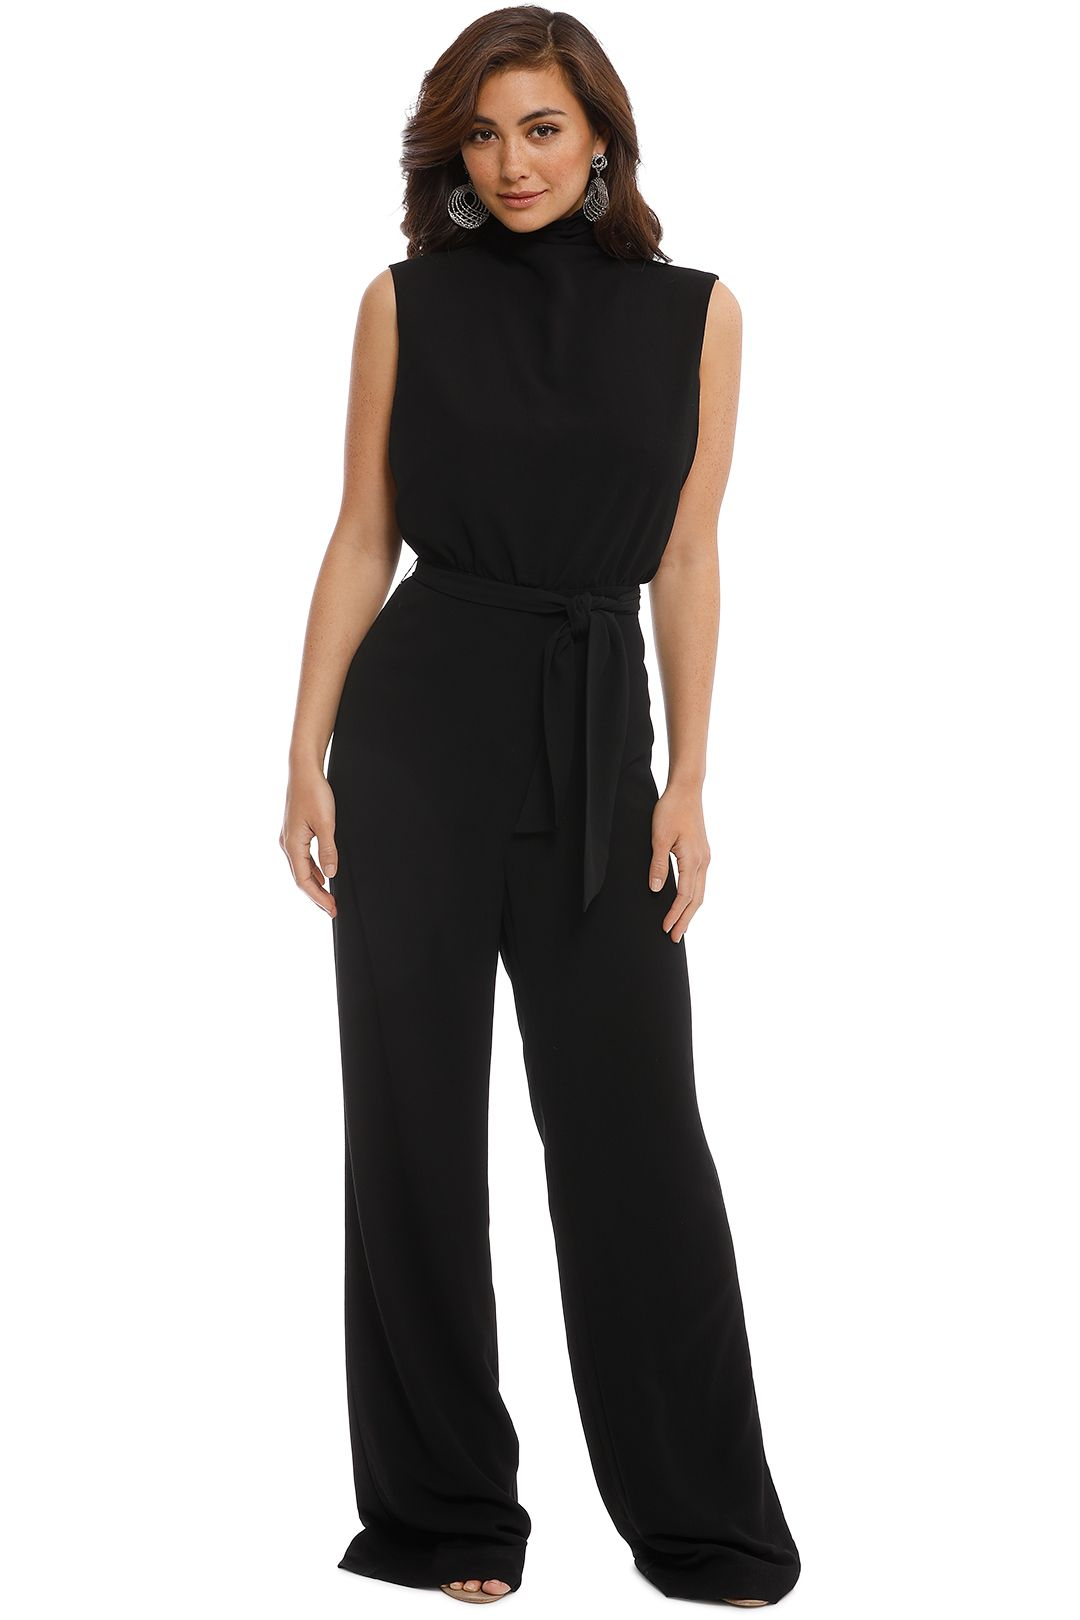 Misha Collection - Ottavia Pantsuit - Back - Front